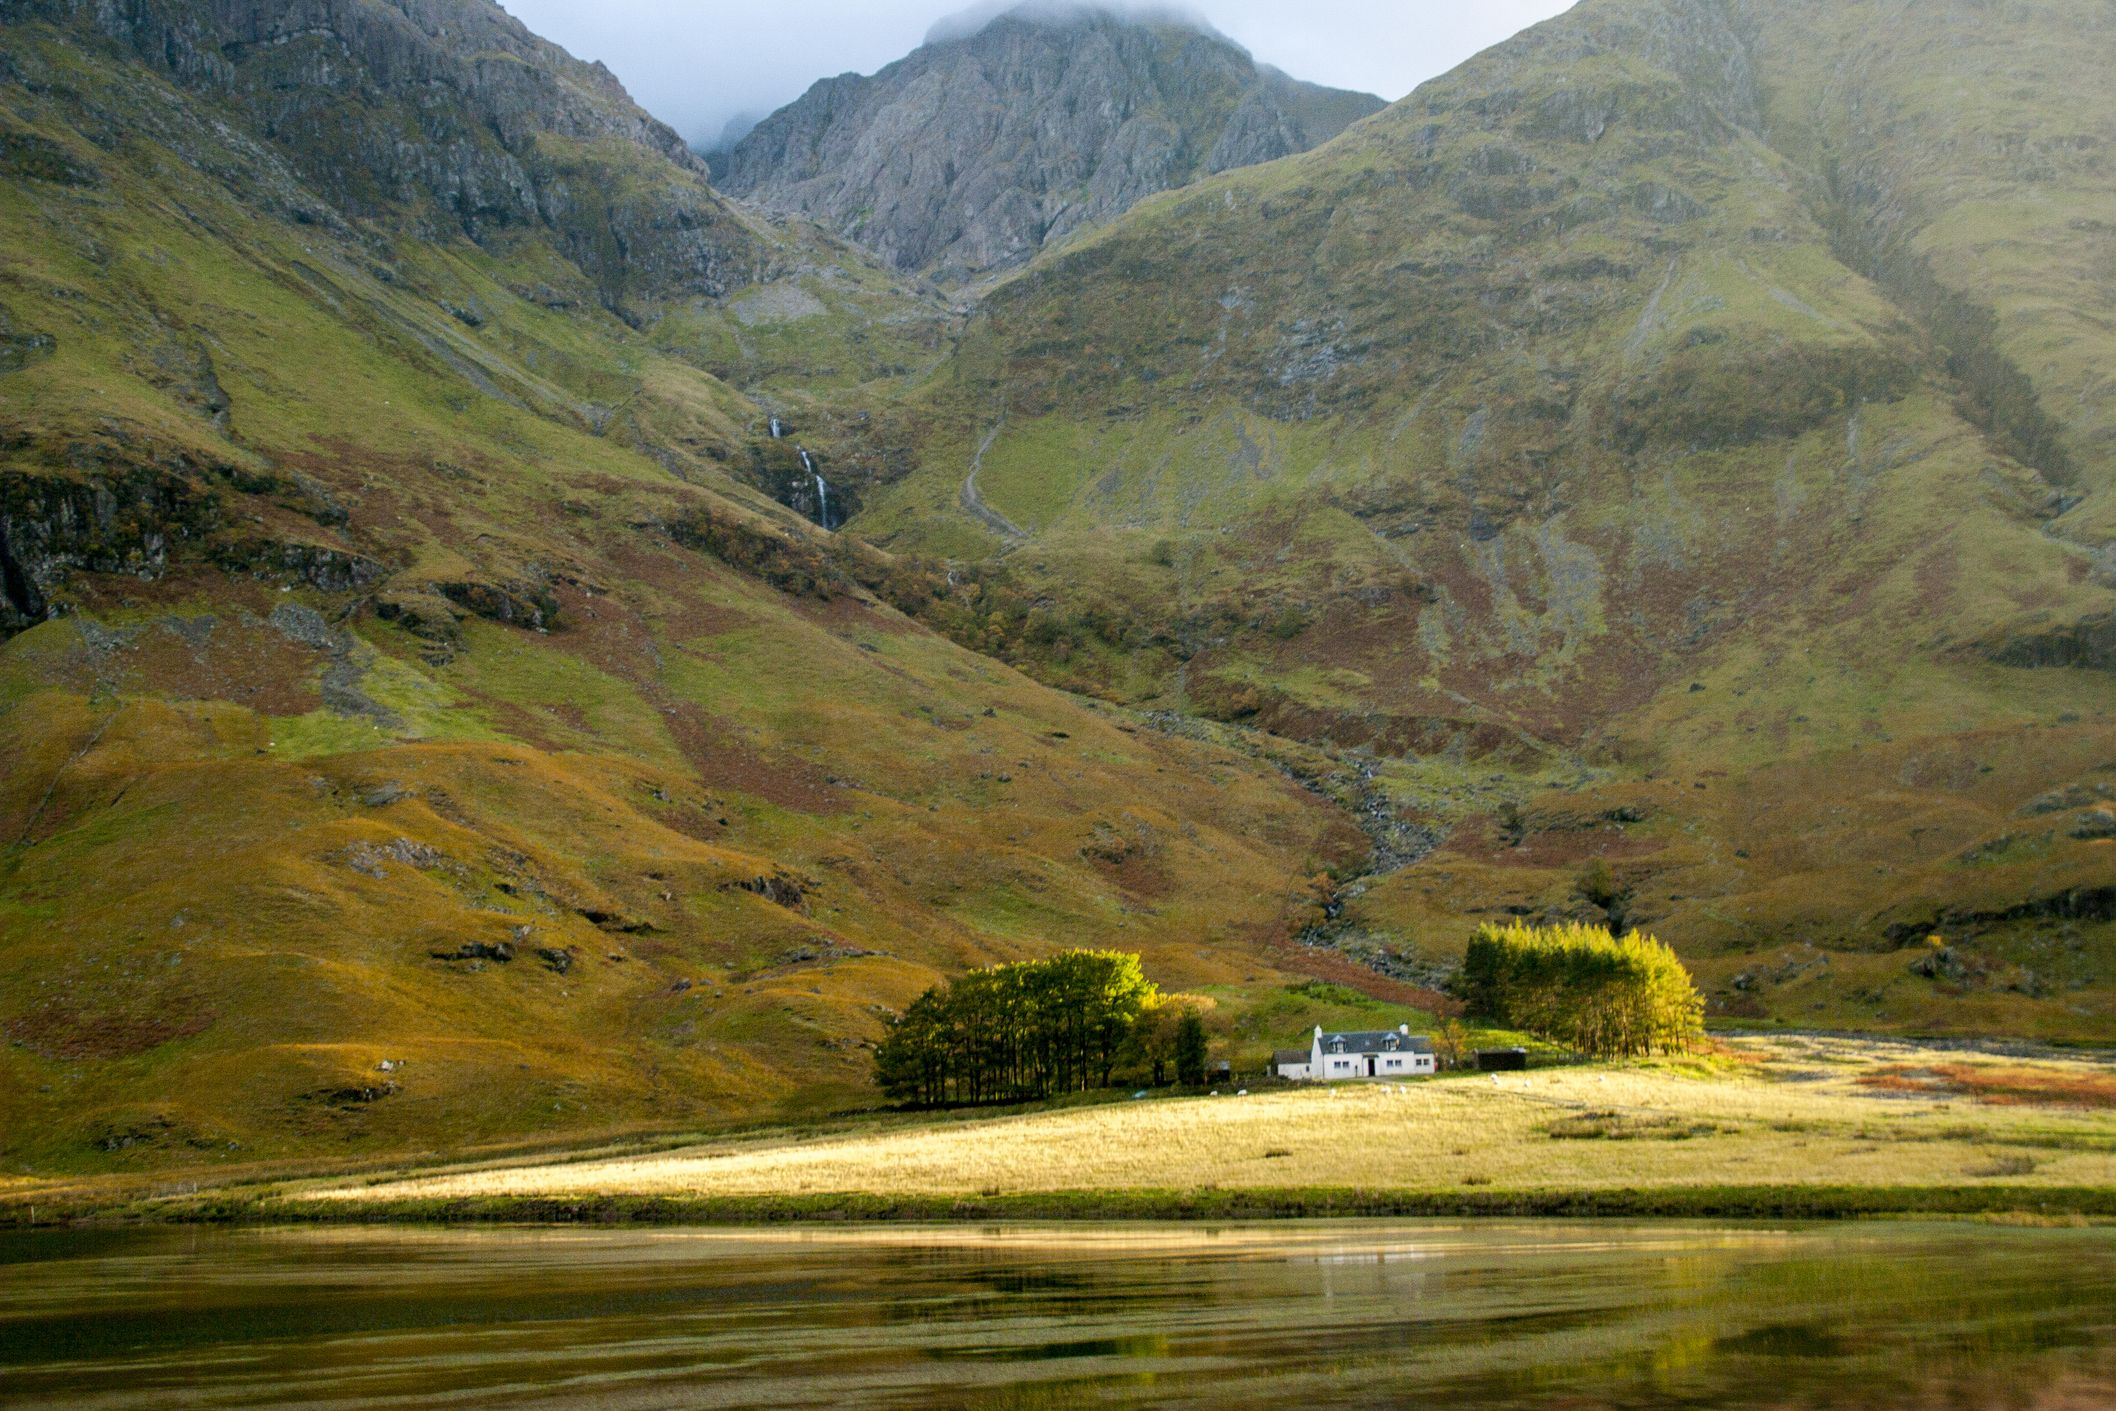 Drive through the best of Britain's countryside on a scenic tour of Scotland